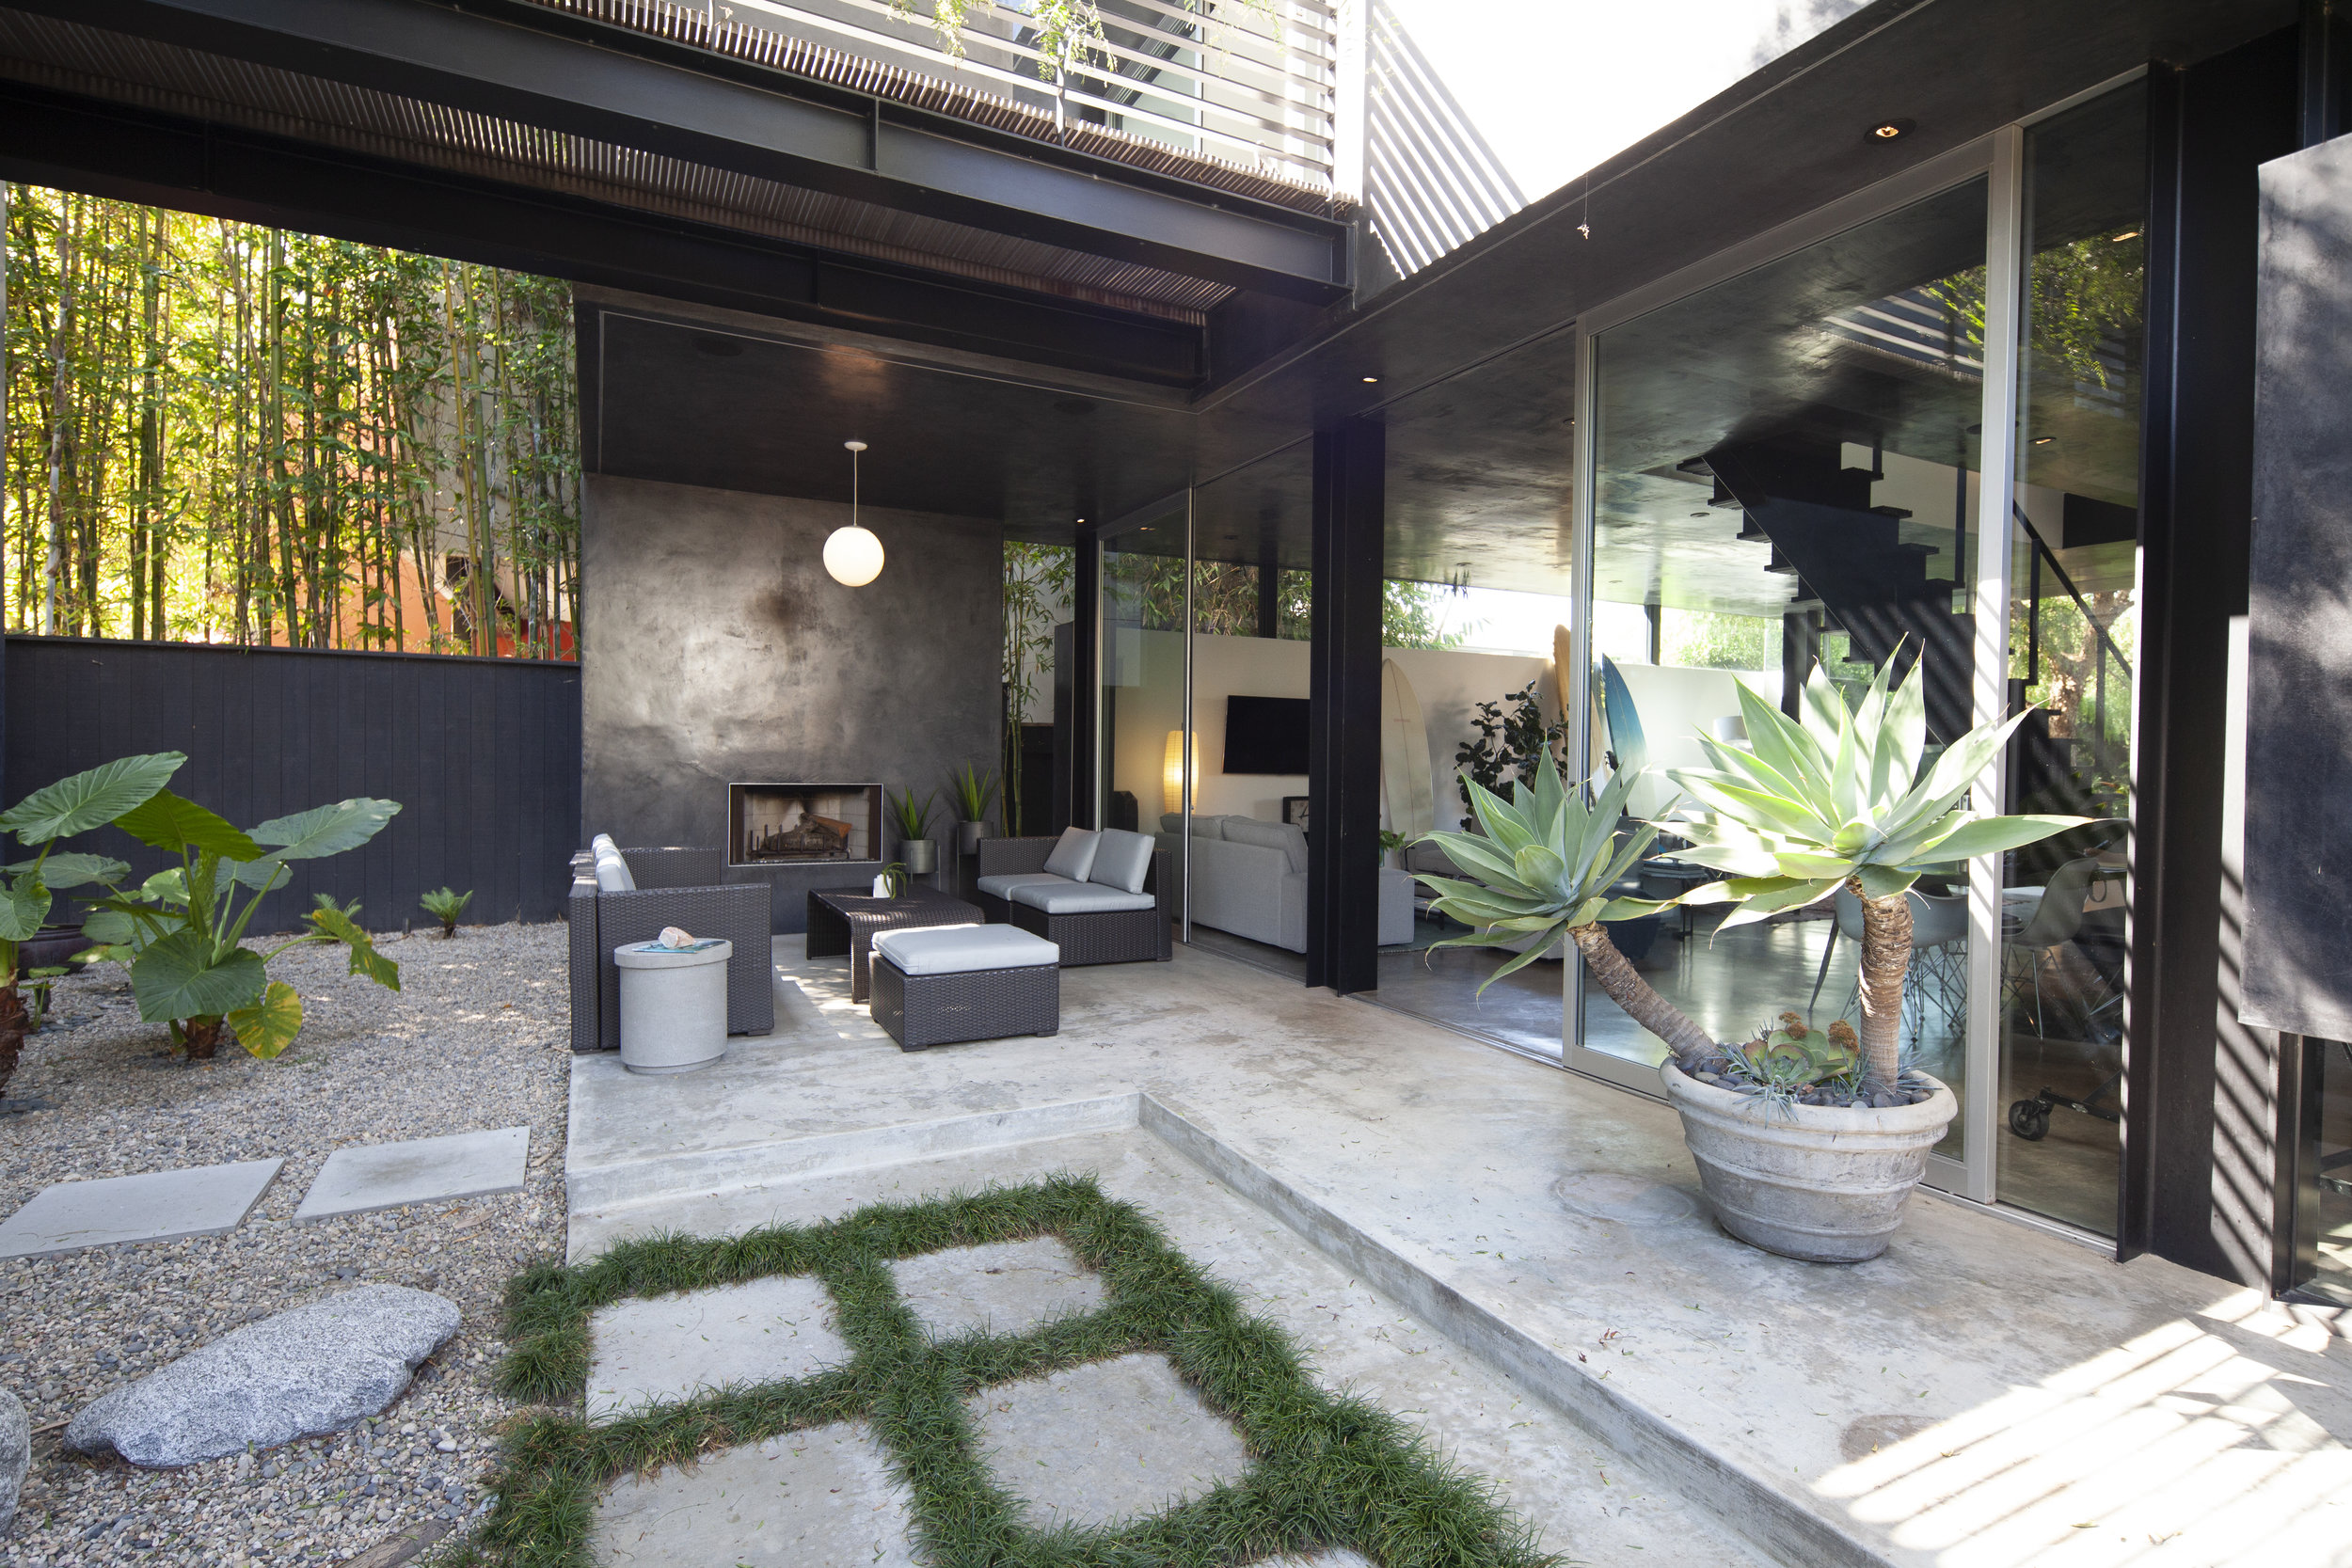 S.E.A.-Studio-Environmental-Architecture-David-Hertz-FAIA-Floating-House-Venice-Beach-sustainable-regenerative-restorative-design-residential-contemporary-modern-courtyard-patio-green-building-balcony-view-garden-westside-living-studioea-1.jpg